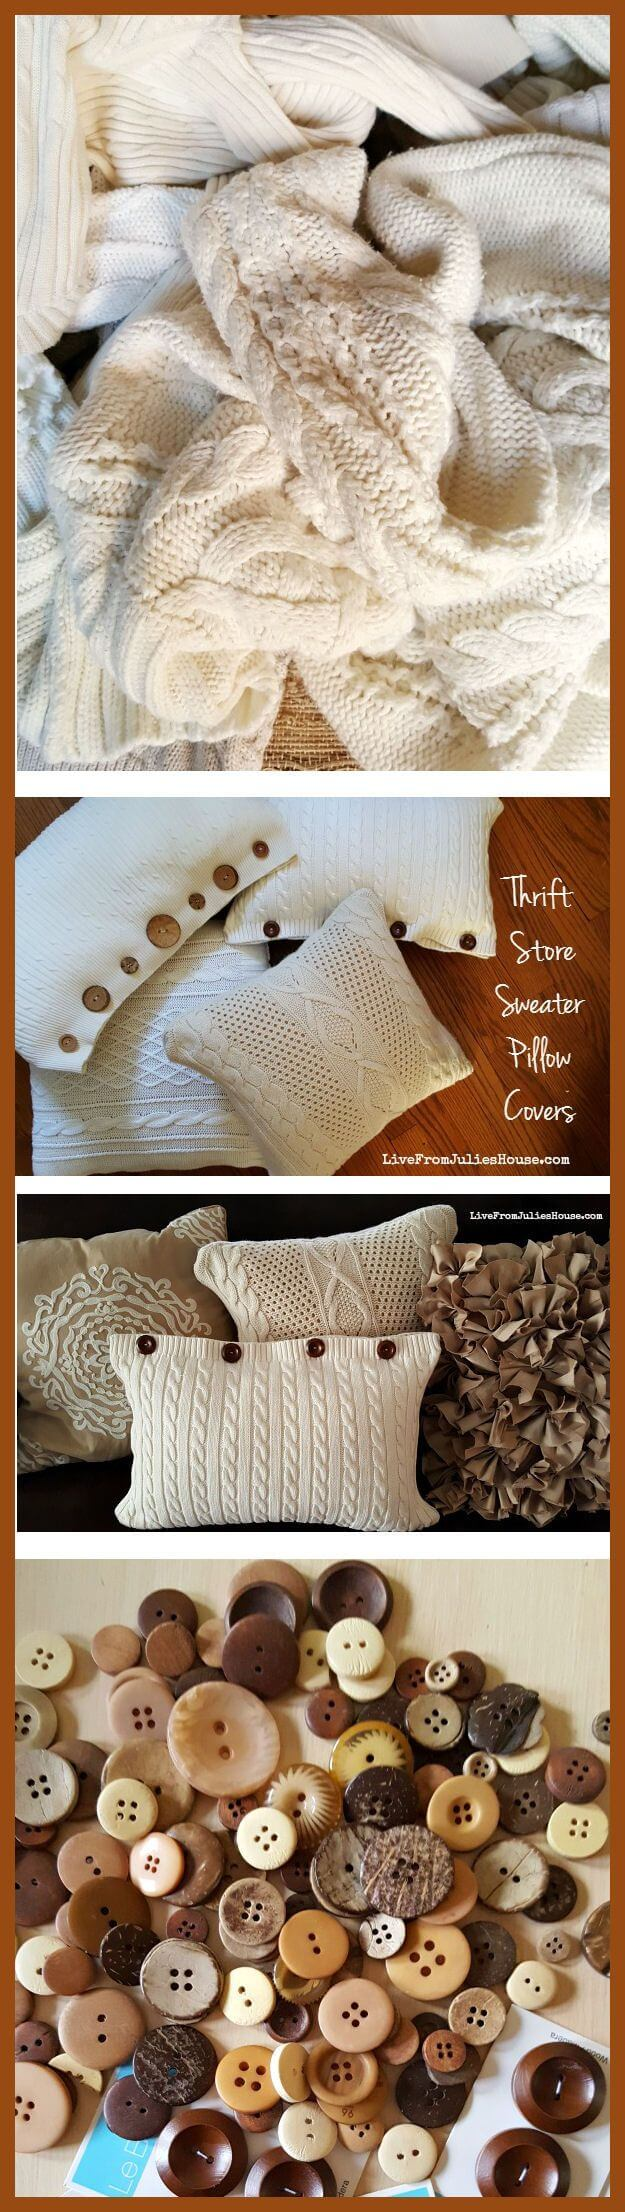 Thrift Store Sweater Pillow Covers